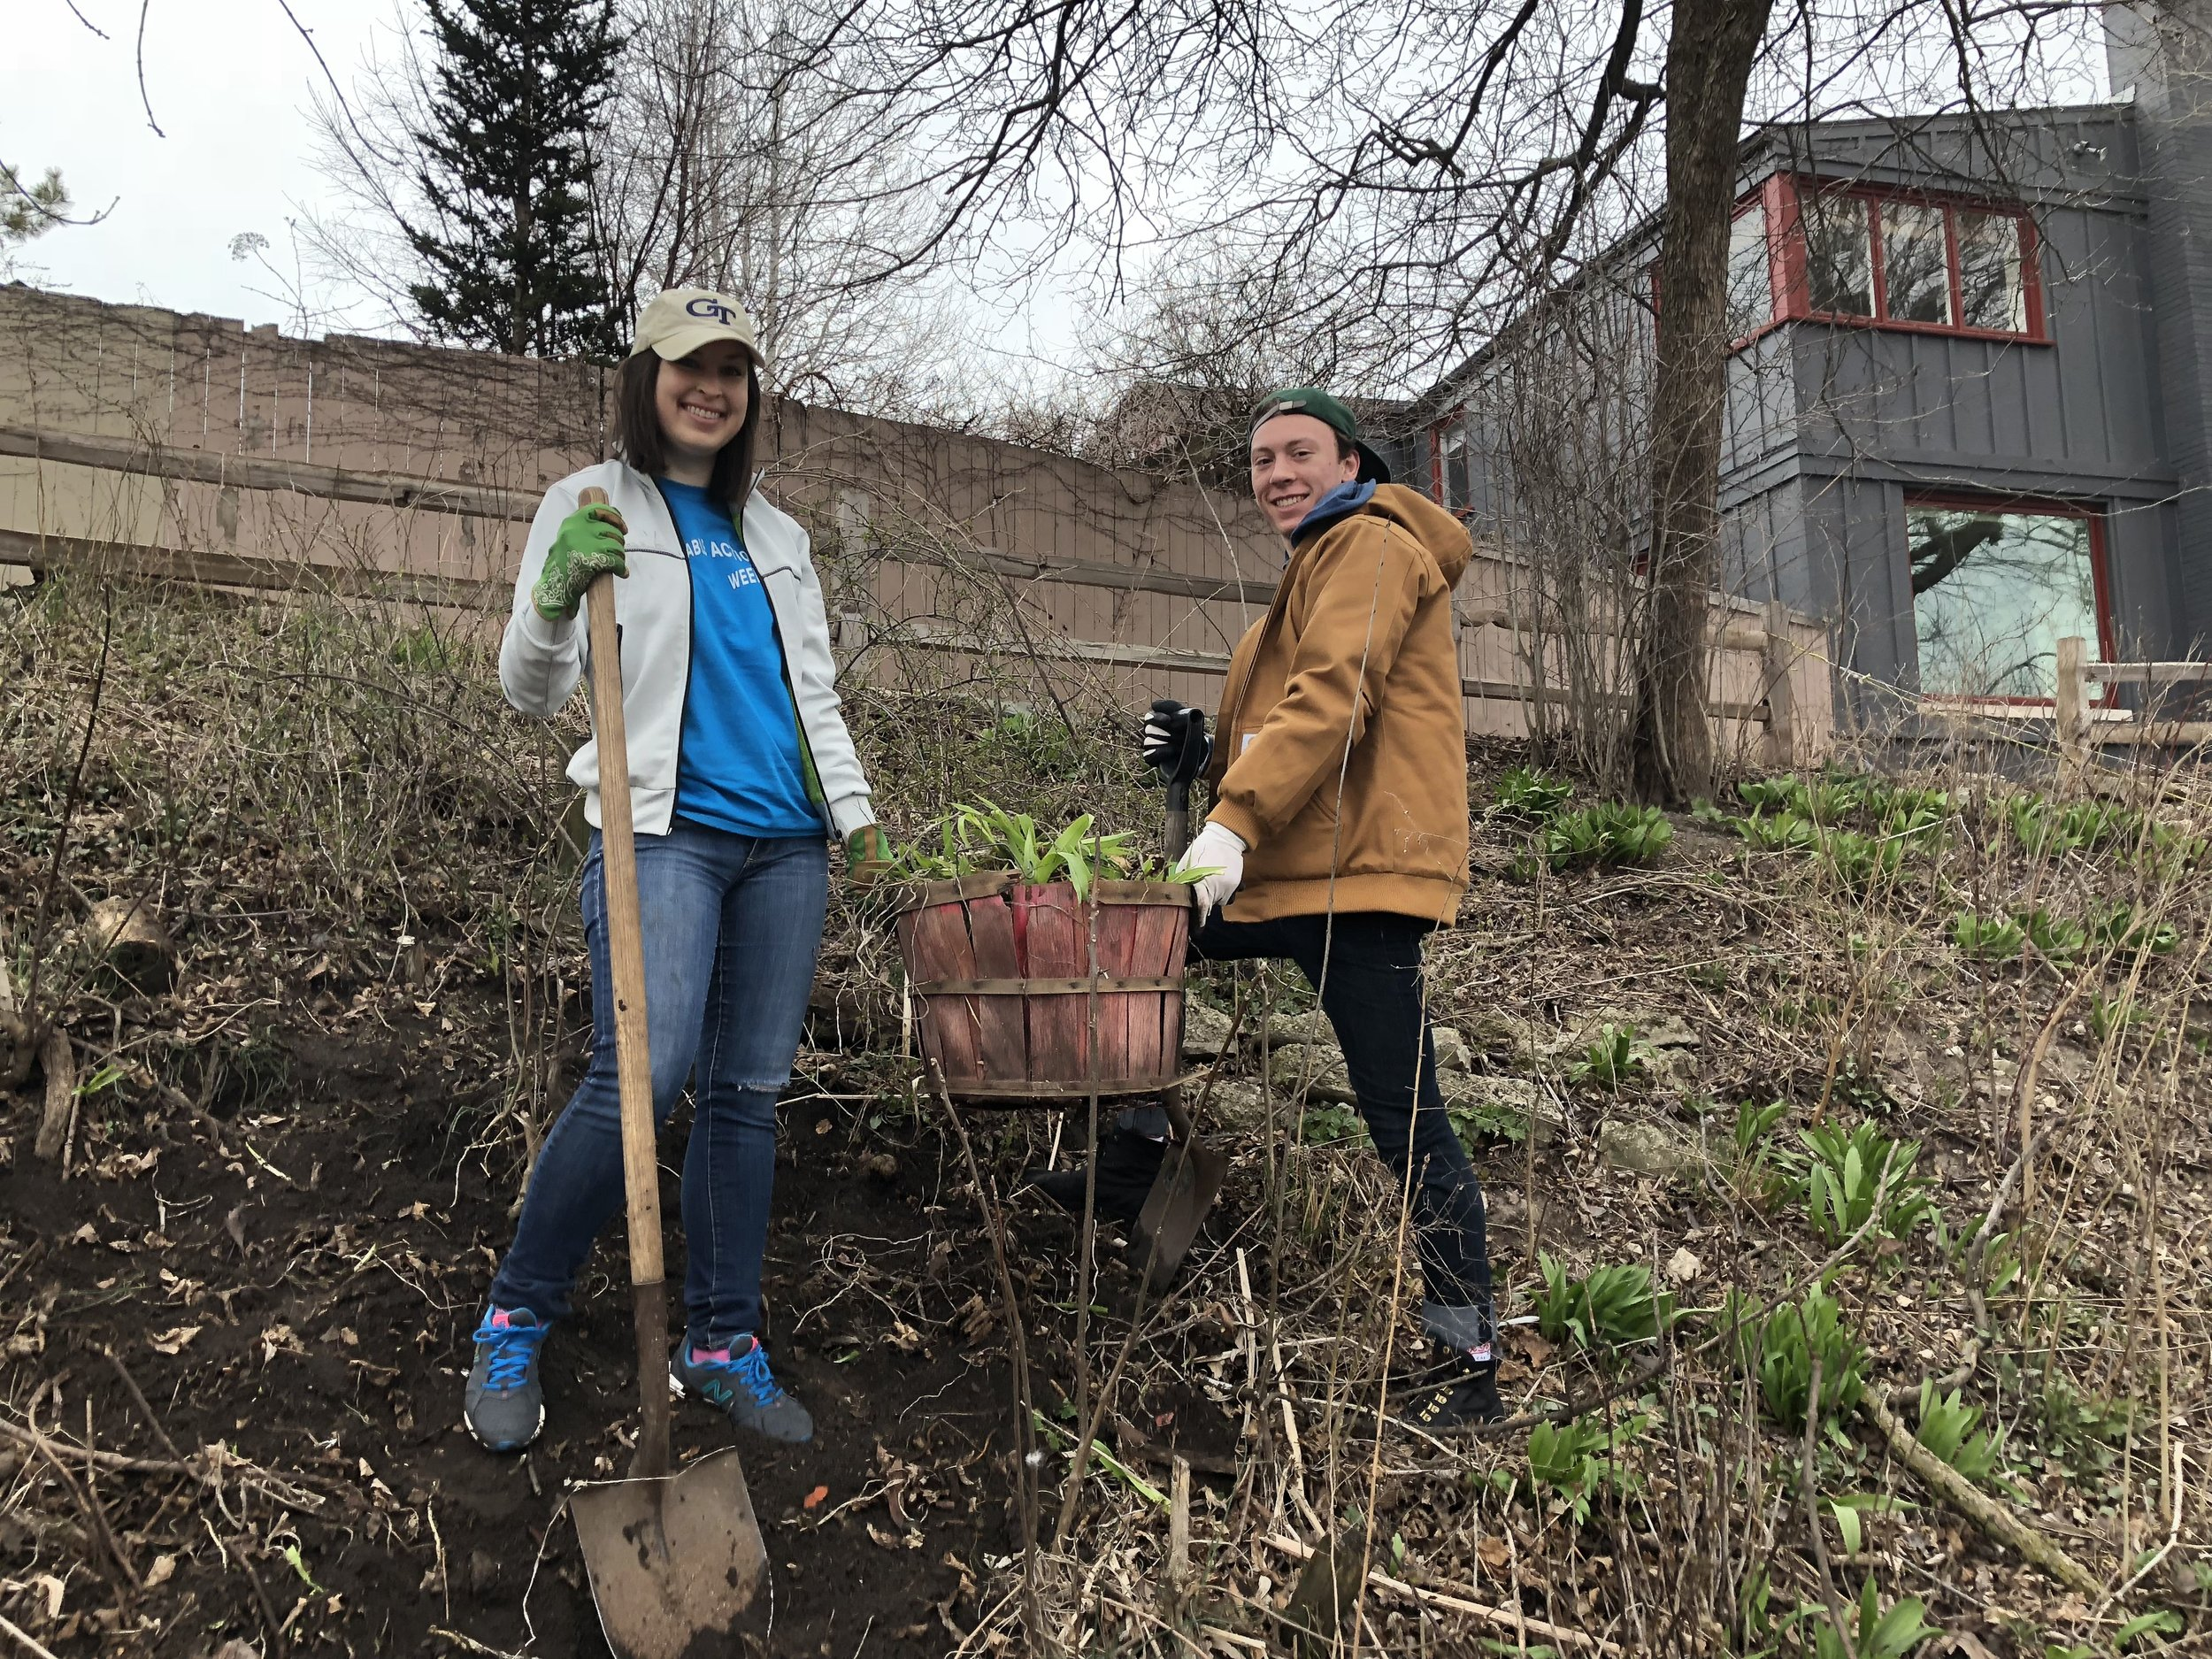 Volunteers remove invasive plants from the Horner Park riverbank